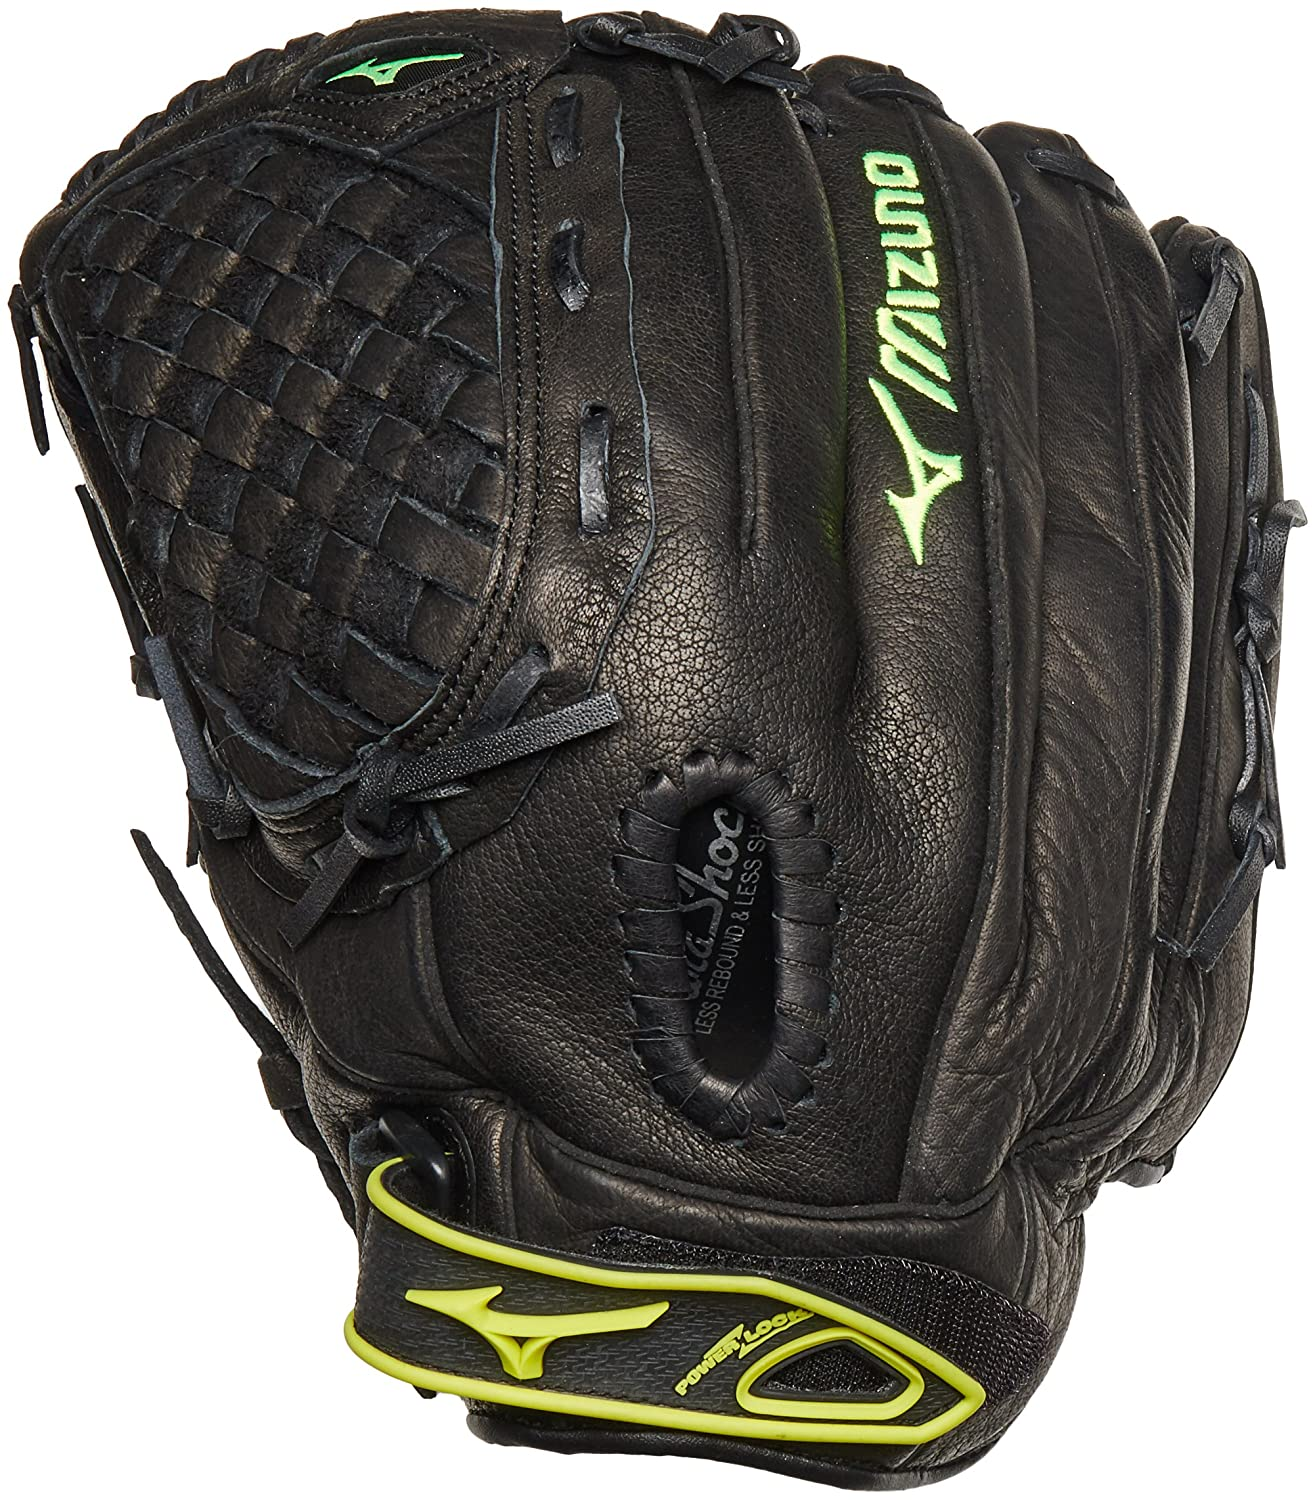 1aded9f74907 Amazon.com : Mizuno GPL1250F1 Prospect Fastpitch Series Right Handed Throw  Youth Softball Mitt, Black, 12.50-Inch : Softball Infielders Gloves :  Sports & ...